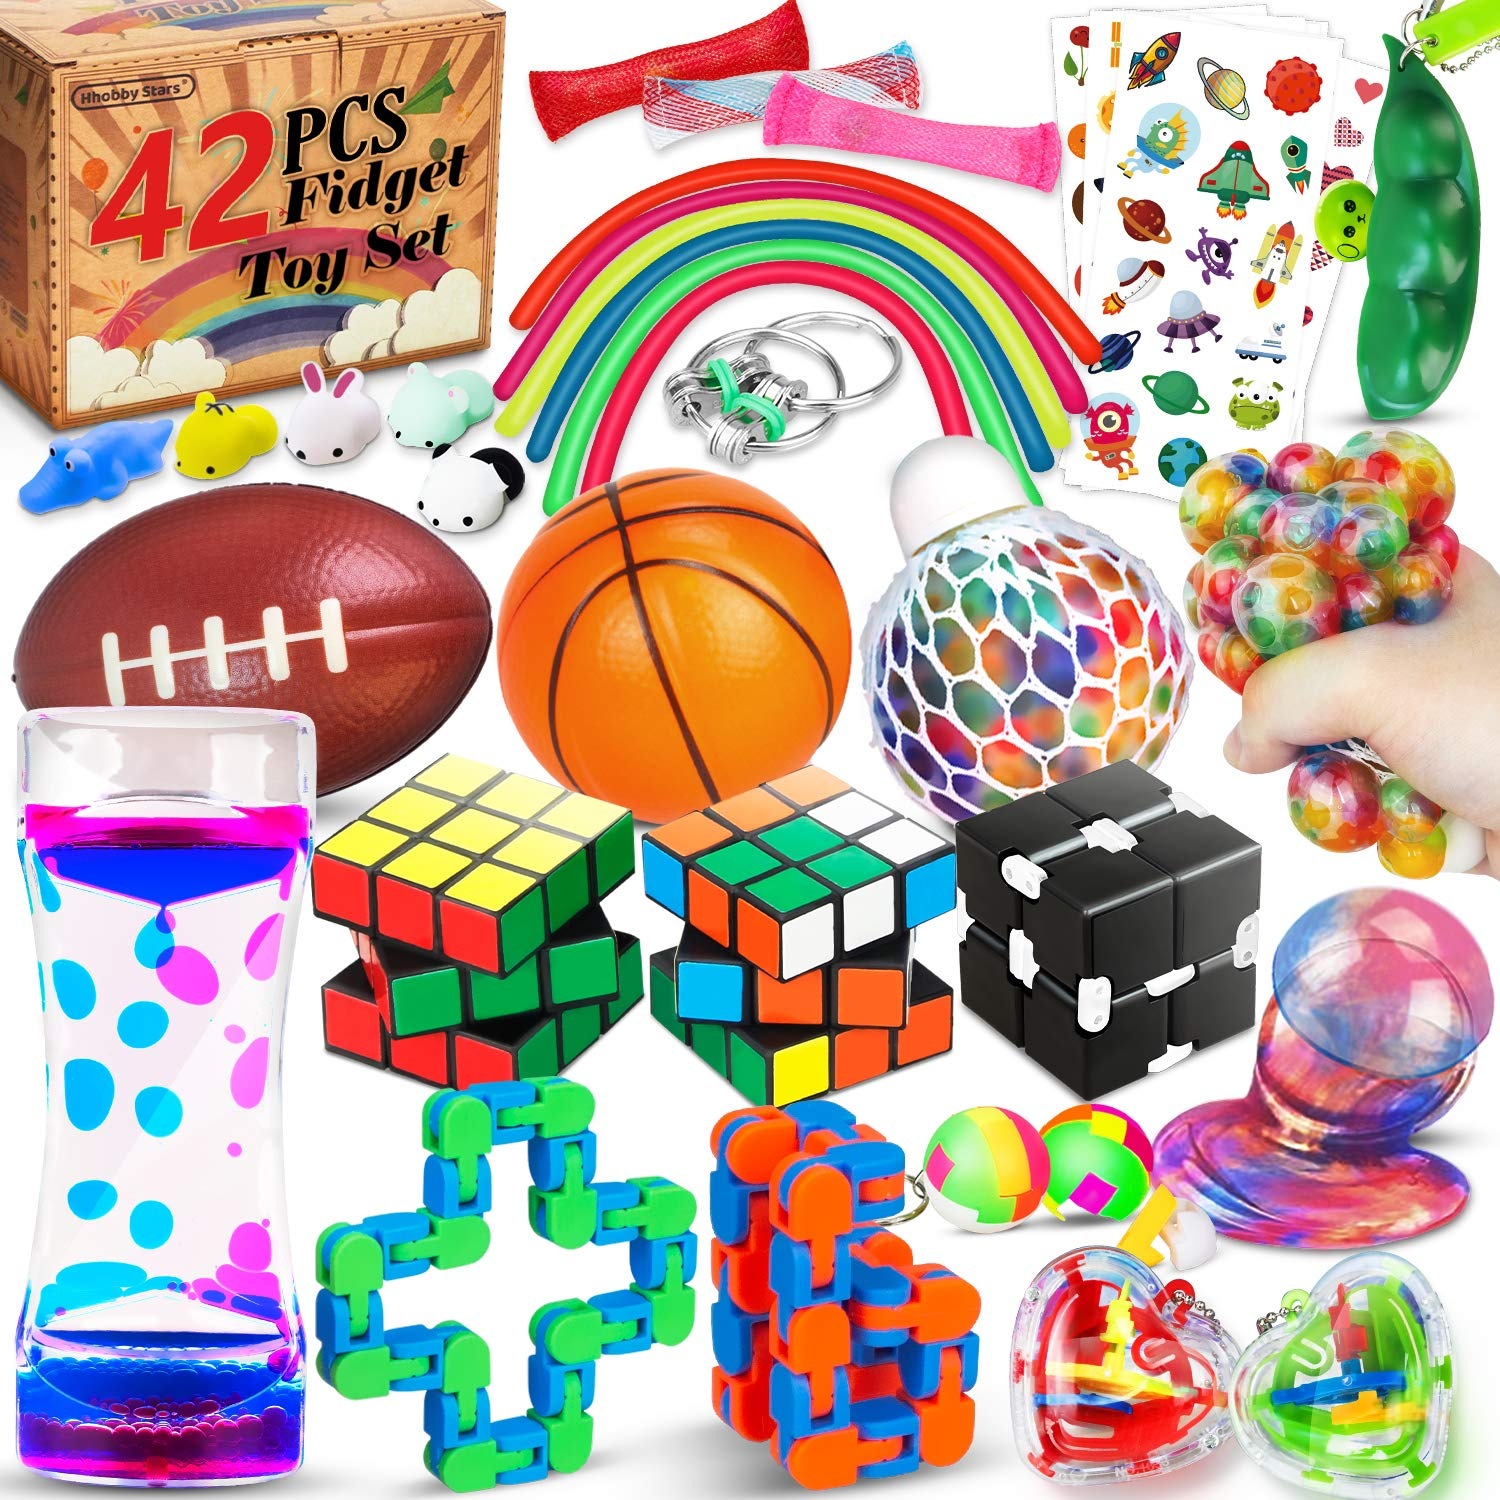 42 Pcs Sensory Fidget Toys Pack, Stress Relief & Anxiety Relief Tools Bundle Figetget Toys Set for Kids Adults, Autistic ADHD Toys, Stress Balls Infinity Cube Marble Mesh Wacky Track Fidgets Box